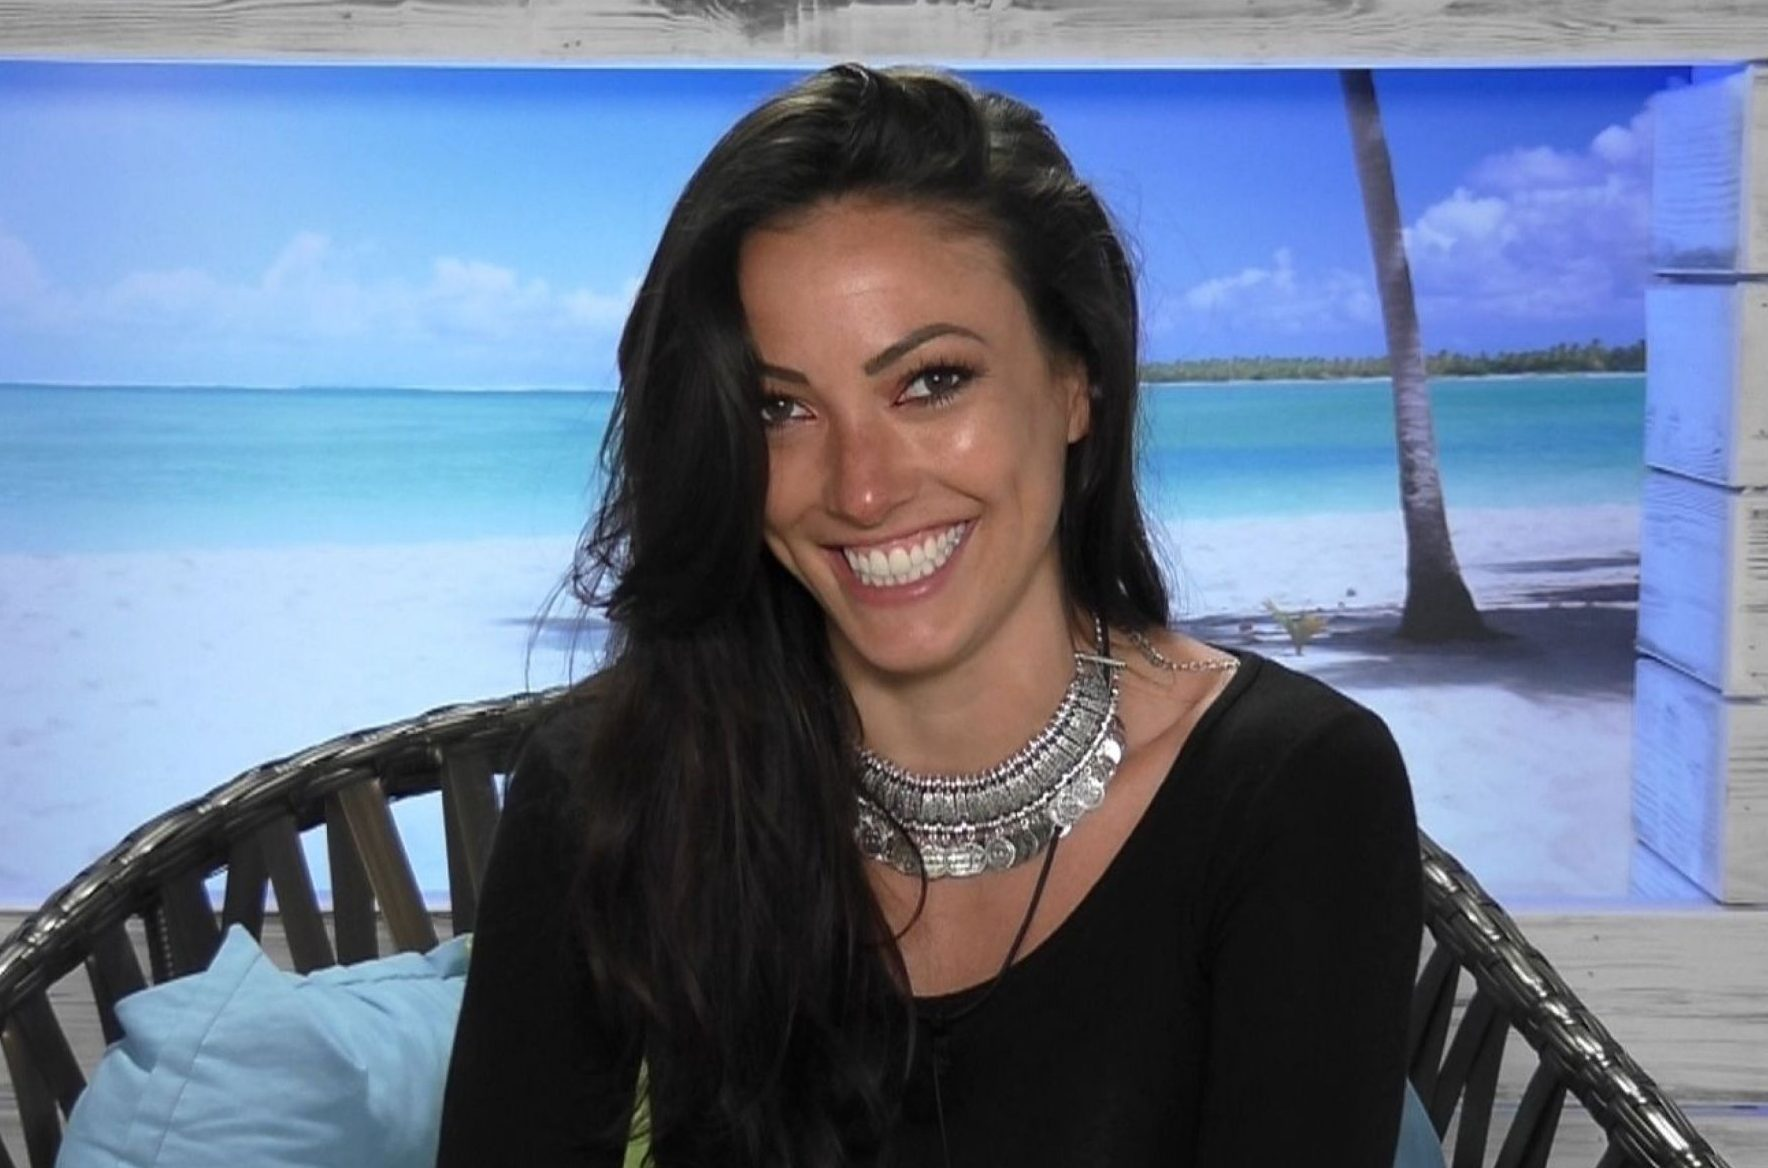 Police confirm they do not believe anybody else was involved in Sophie Gradon's death